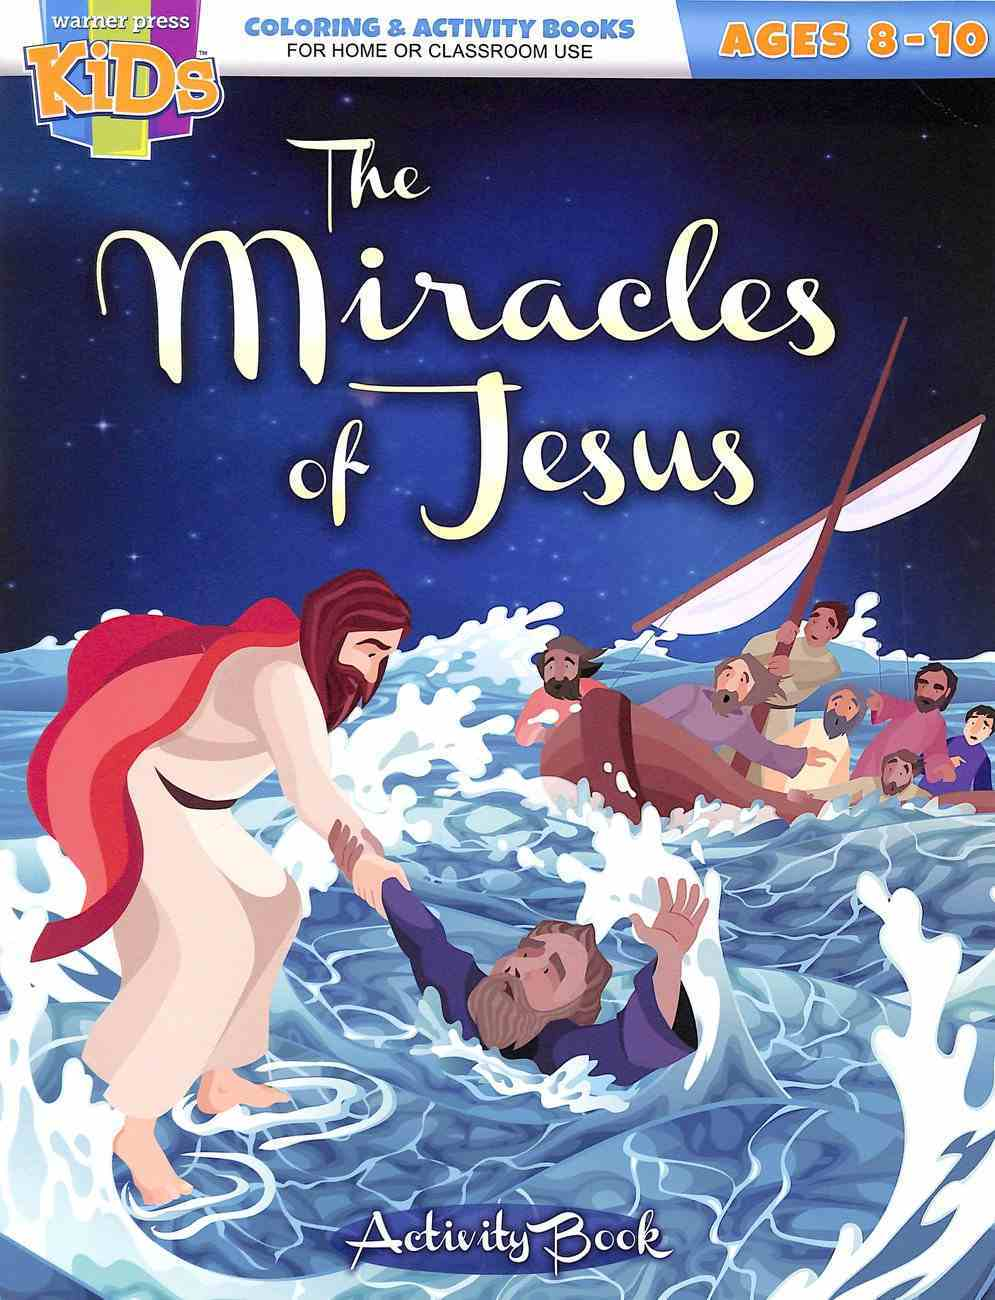 The Miracles of Jesus (Ages 8-10 Reproducible) (Warner Press Colouring & Activity Books Series) Paperback